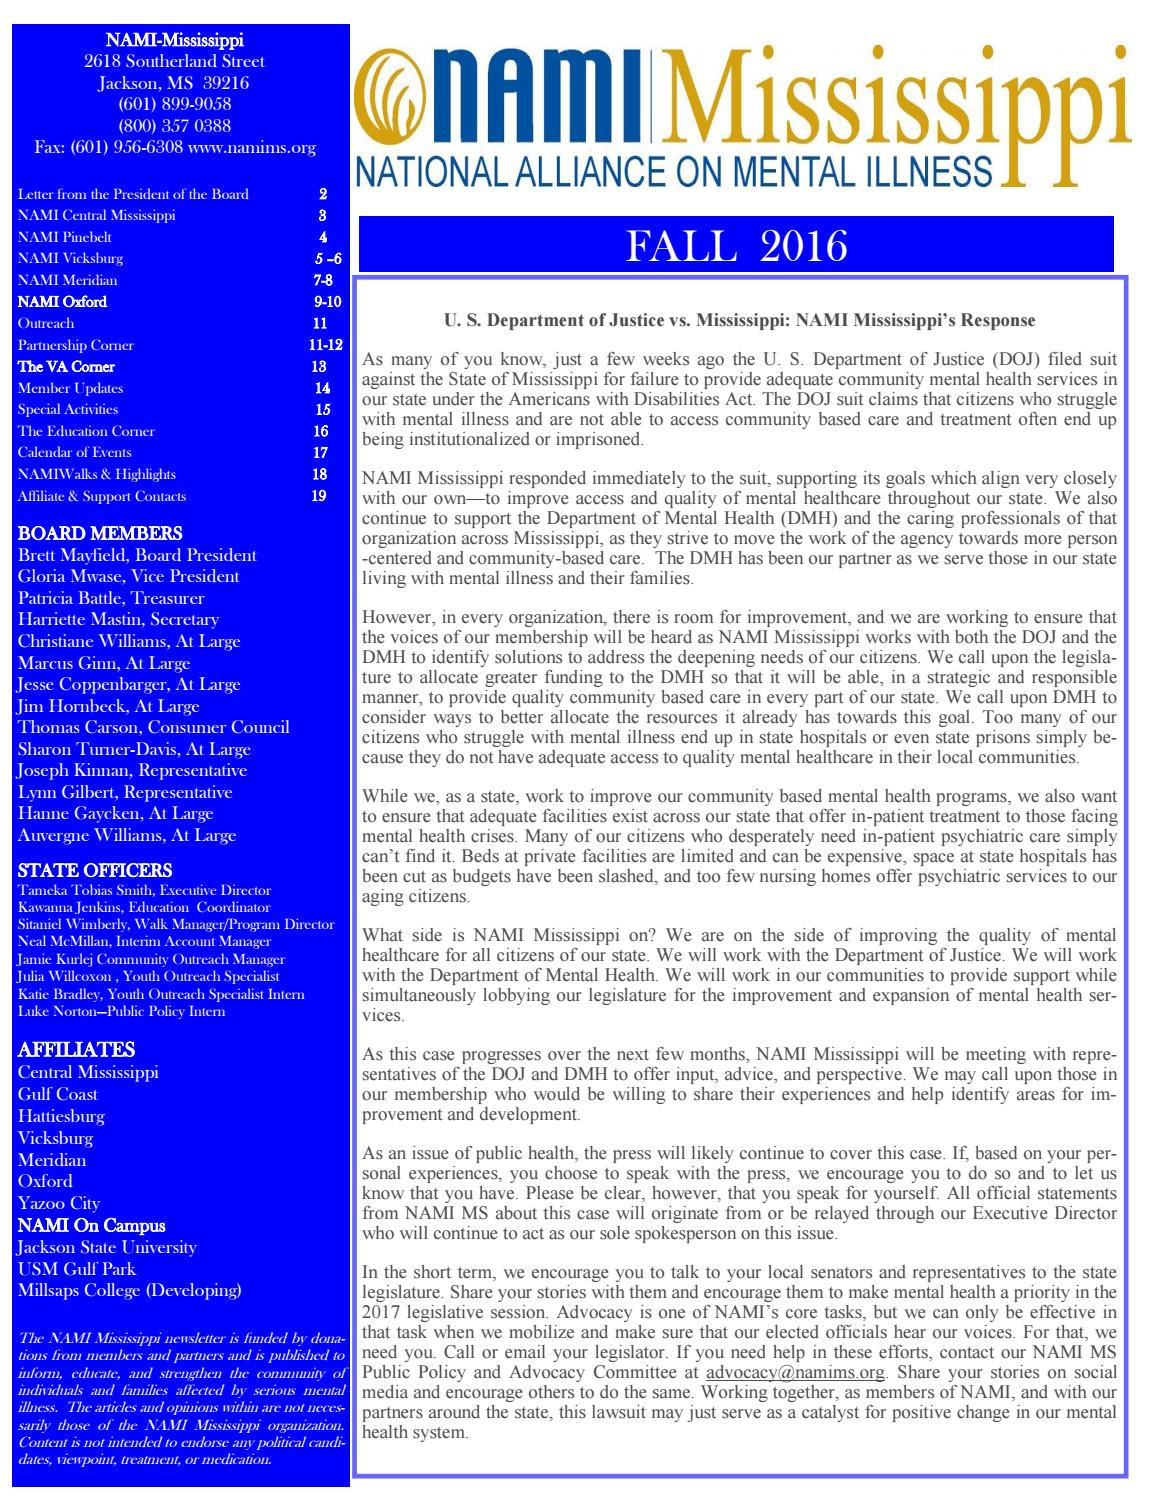 Fall 2016 Newsletter By Nami Mississippi Issuu